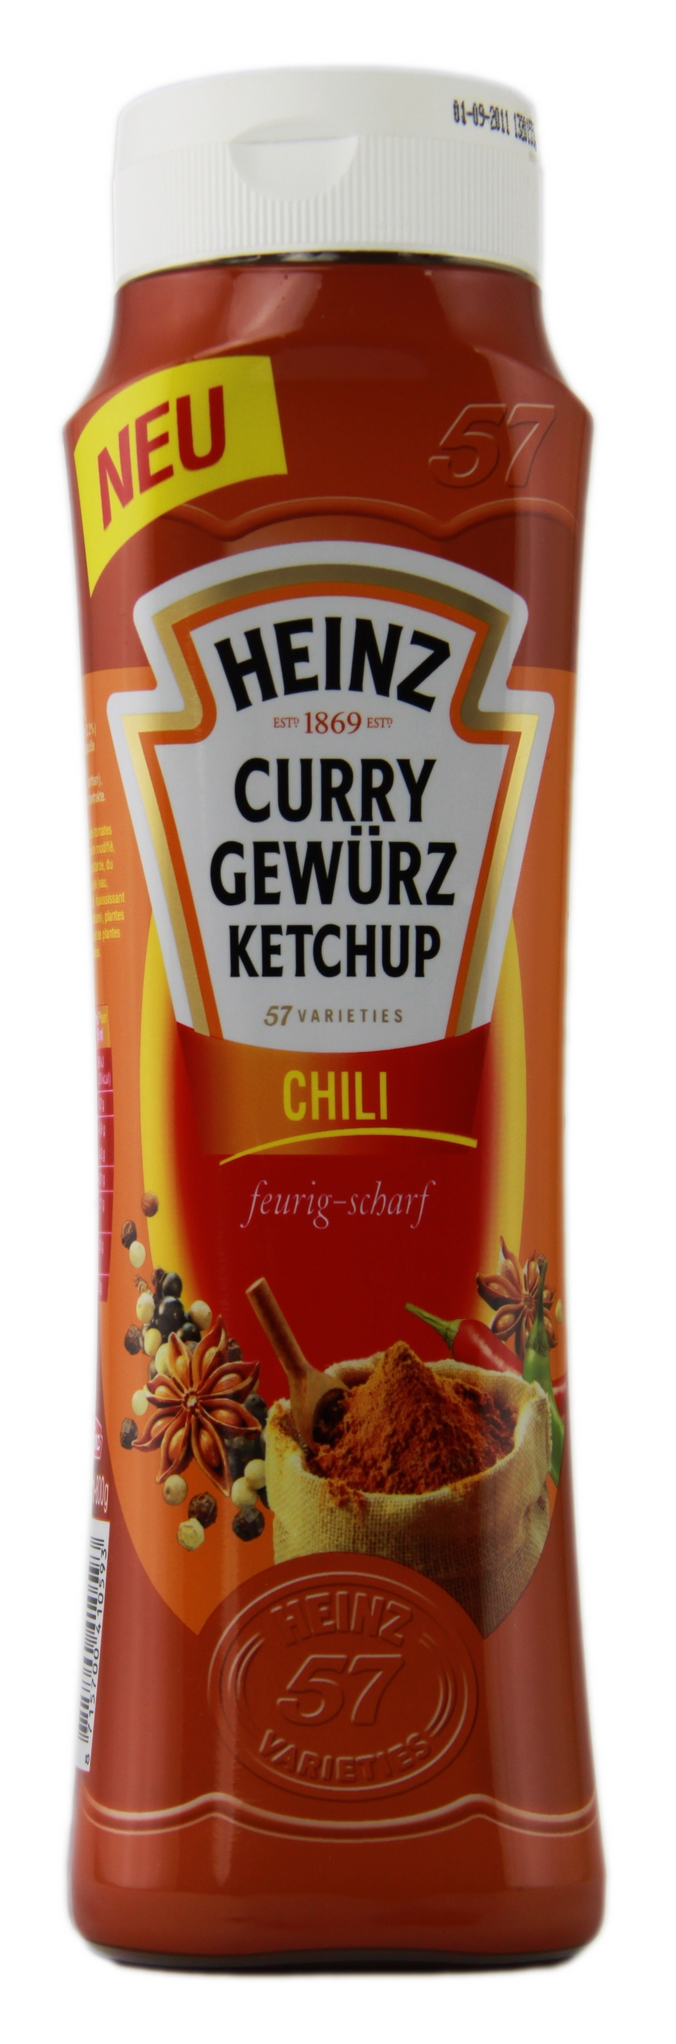 Heinz Curry Gewürz Ketchup Chili